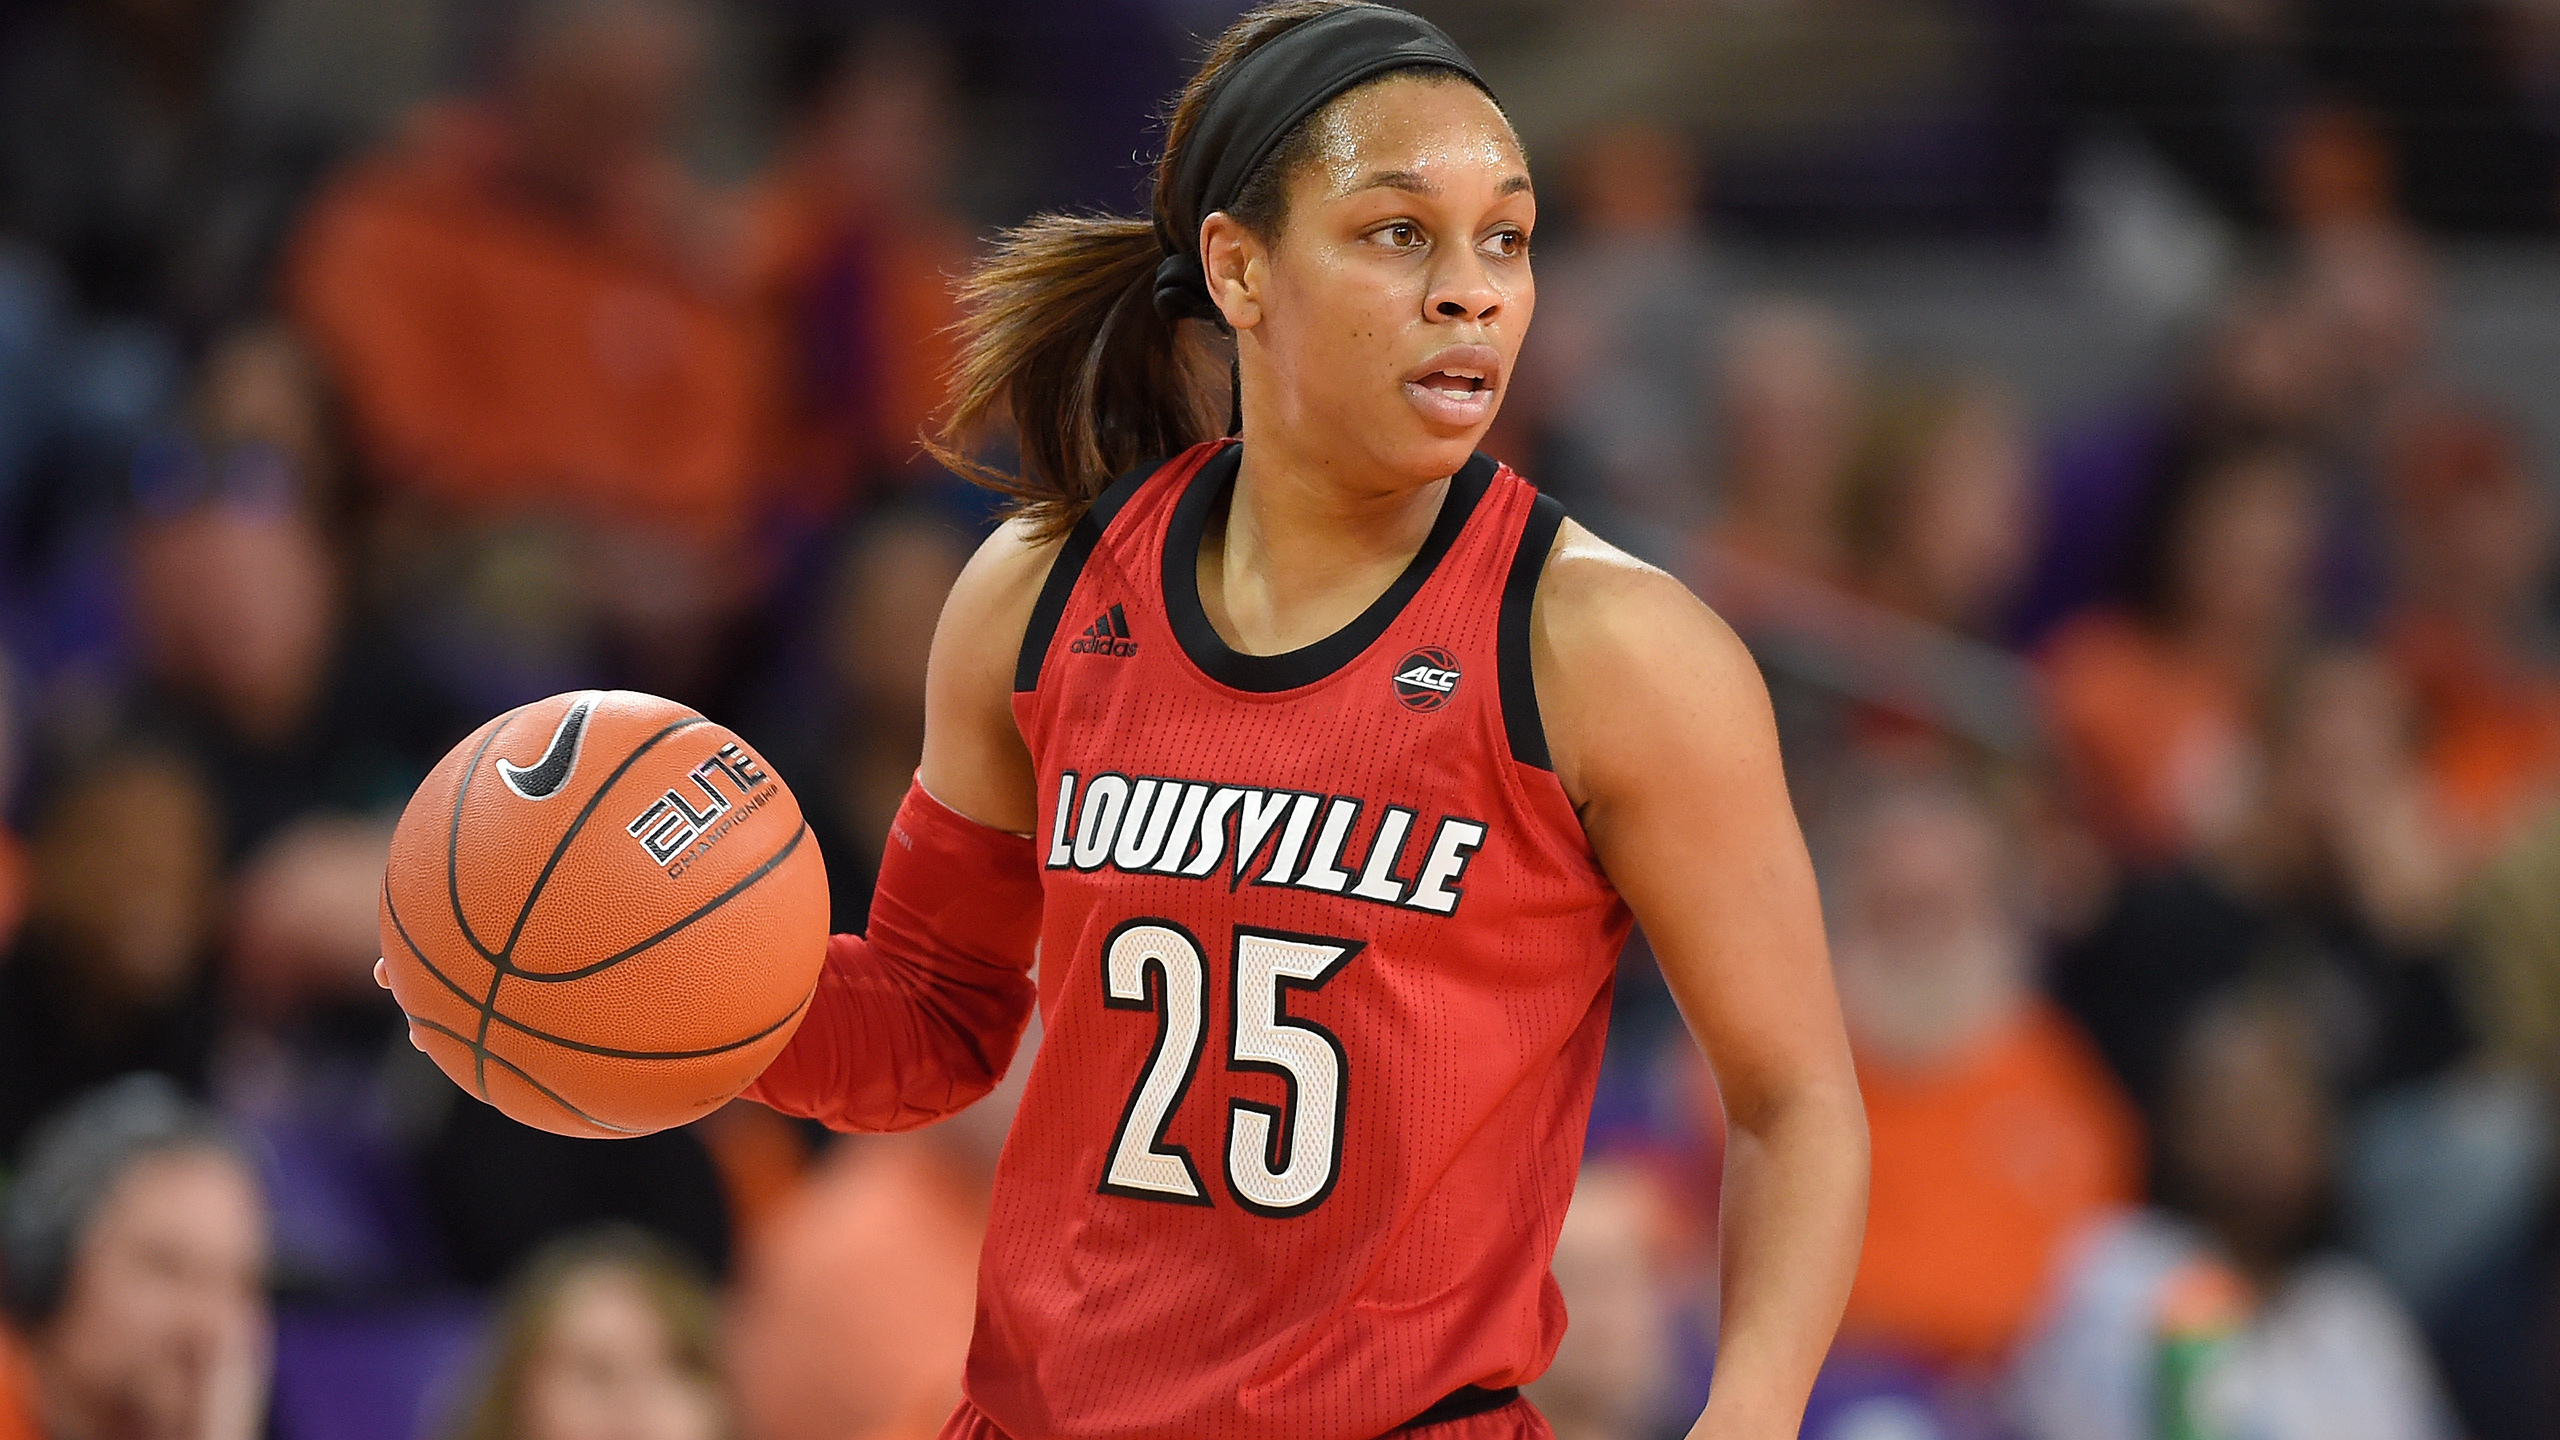 #4 Louisville vs. Virginia